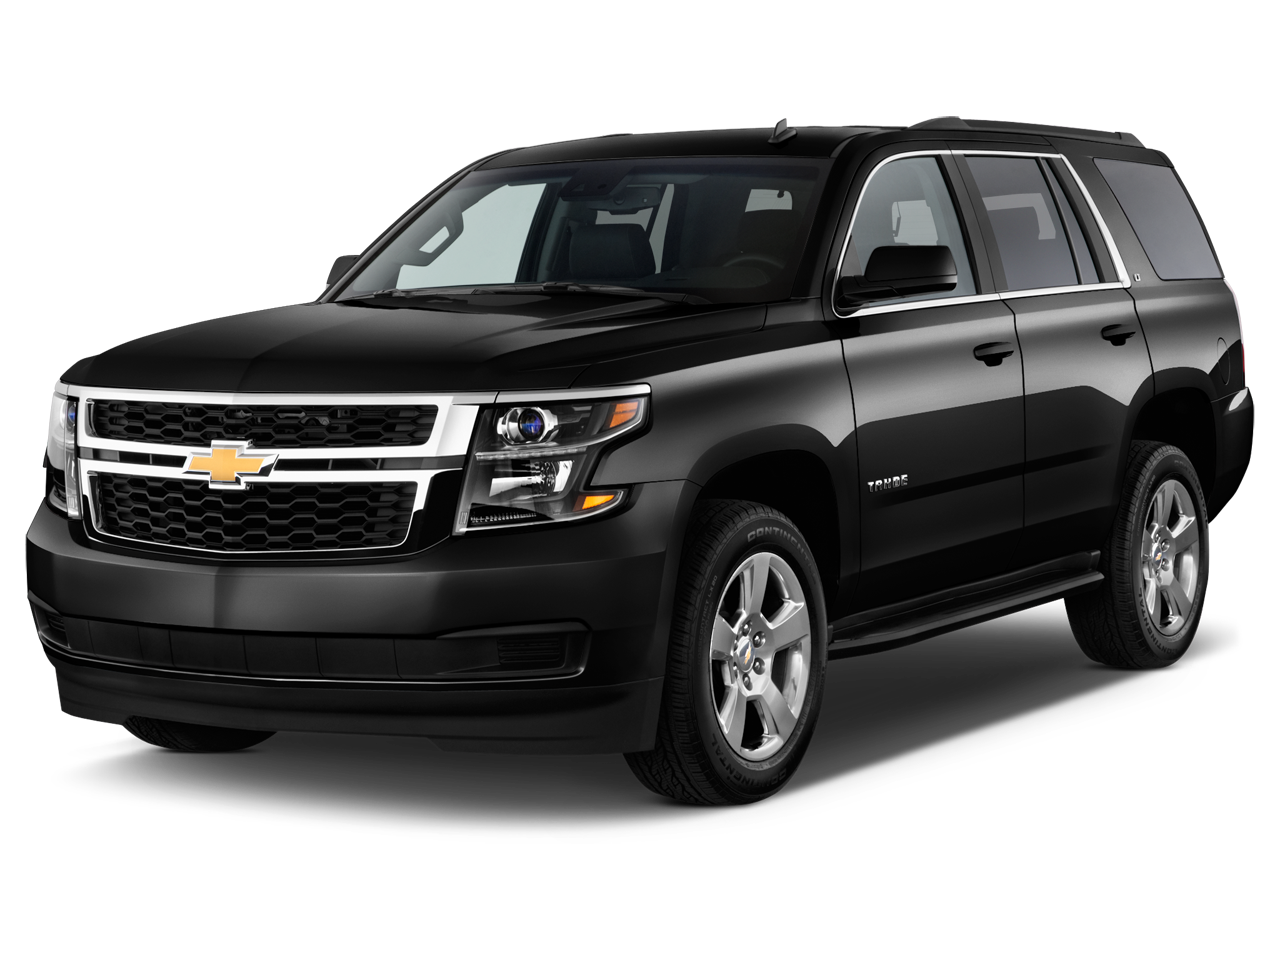 Chevy Suburban SUV, Luxurious SUV for Transportation